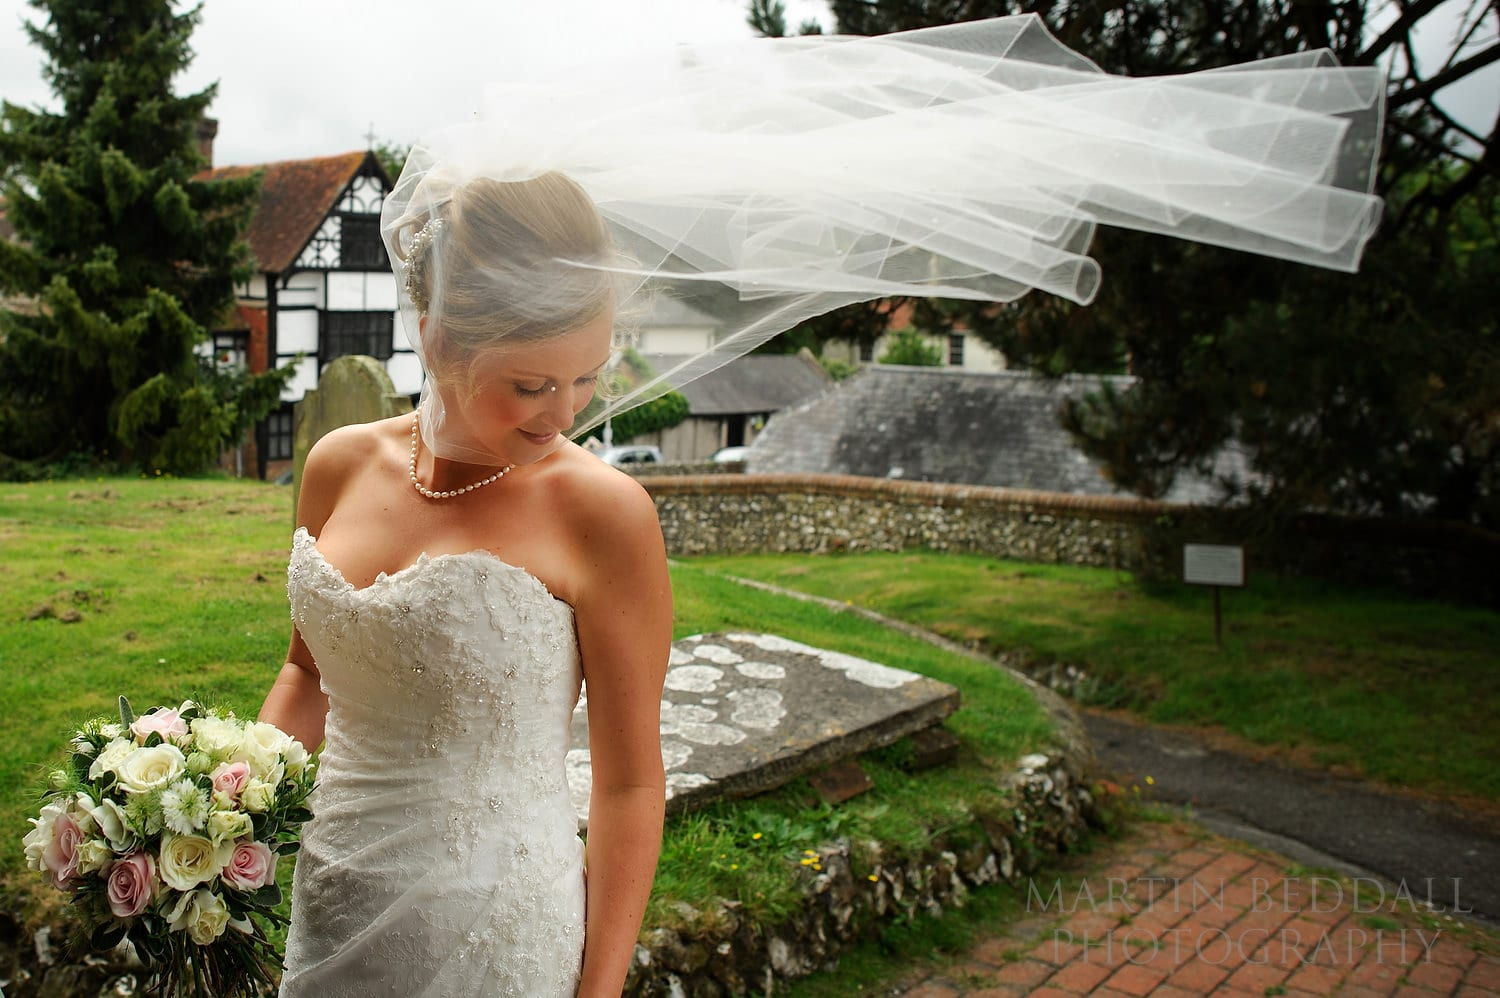 Ditchling wedding photography in 2012